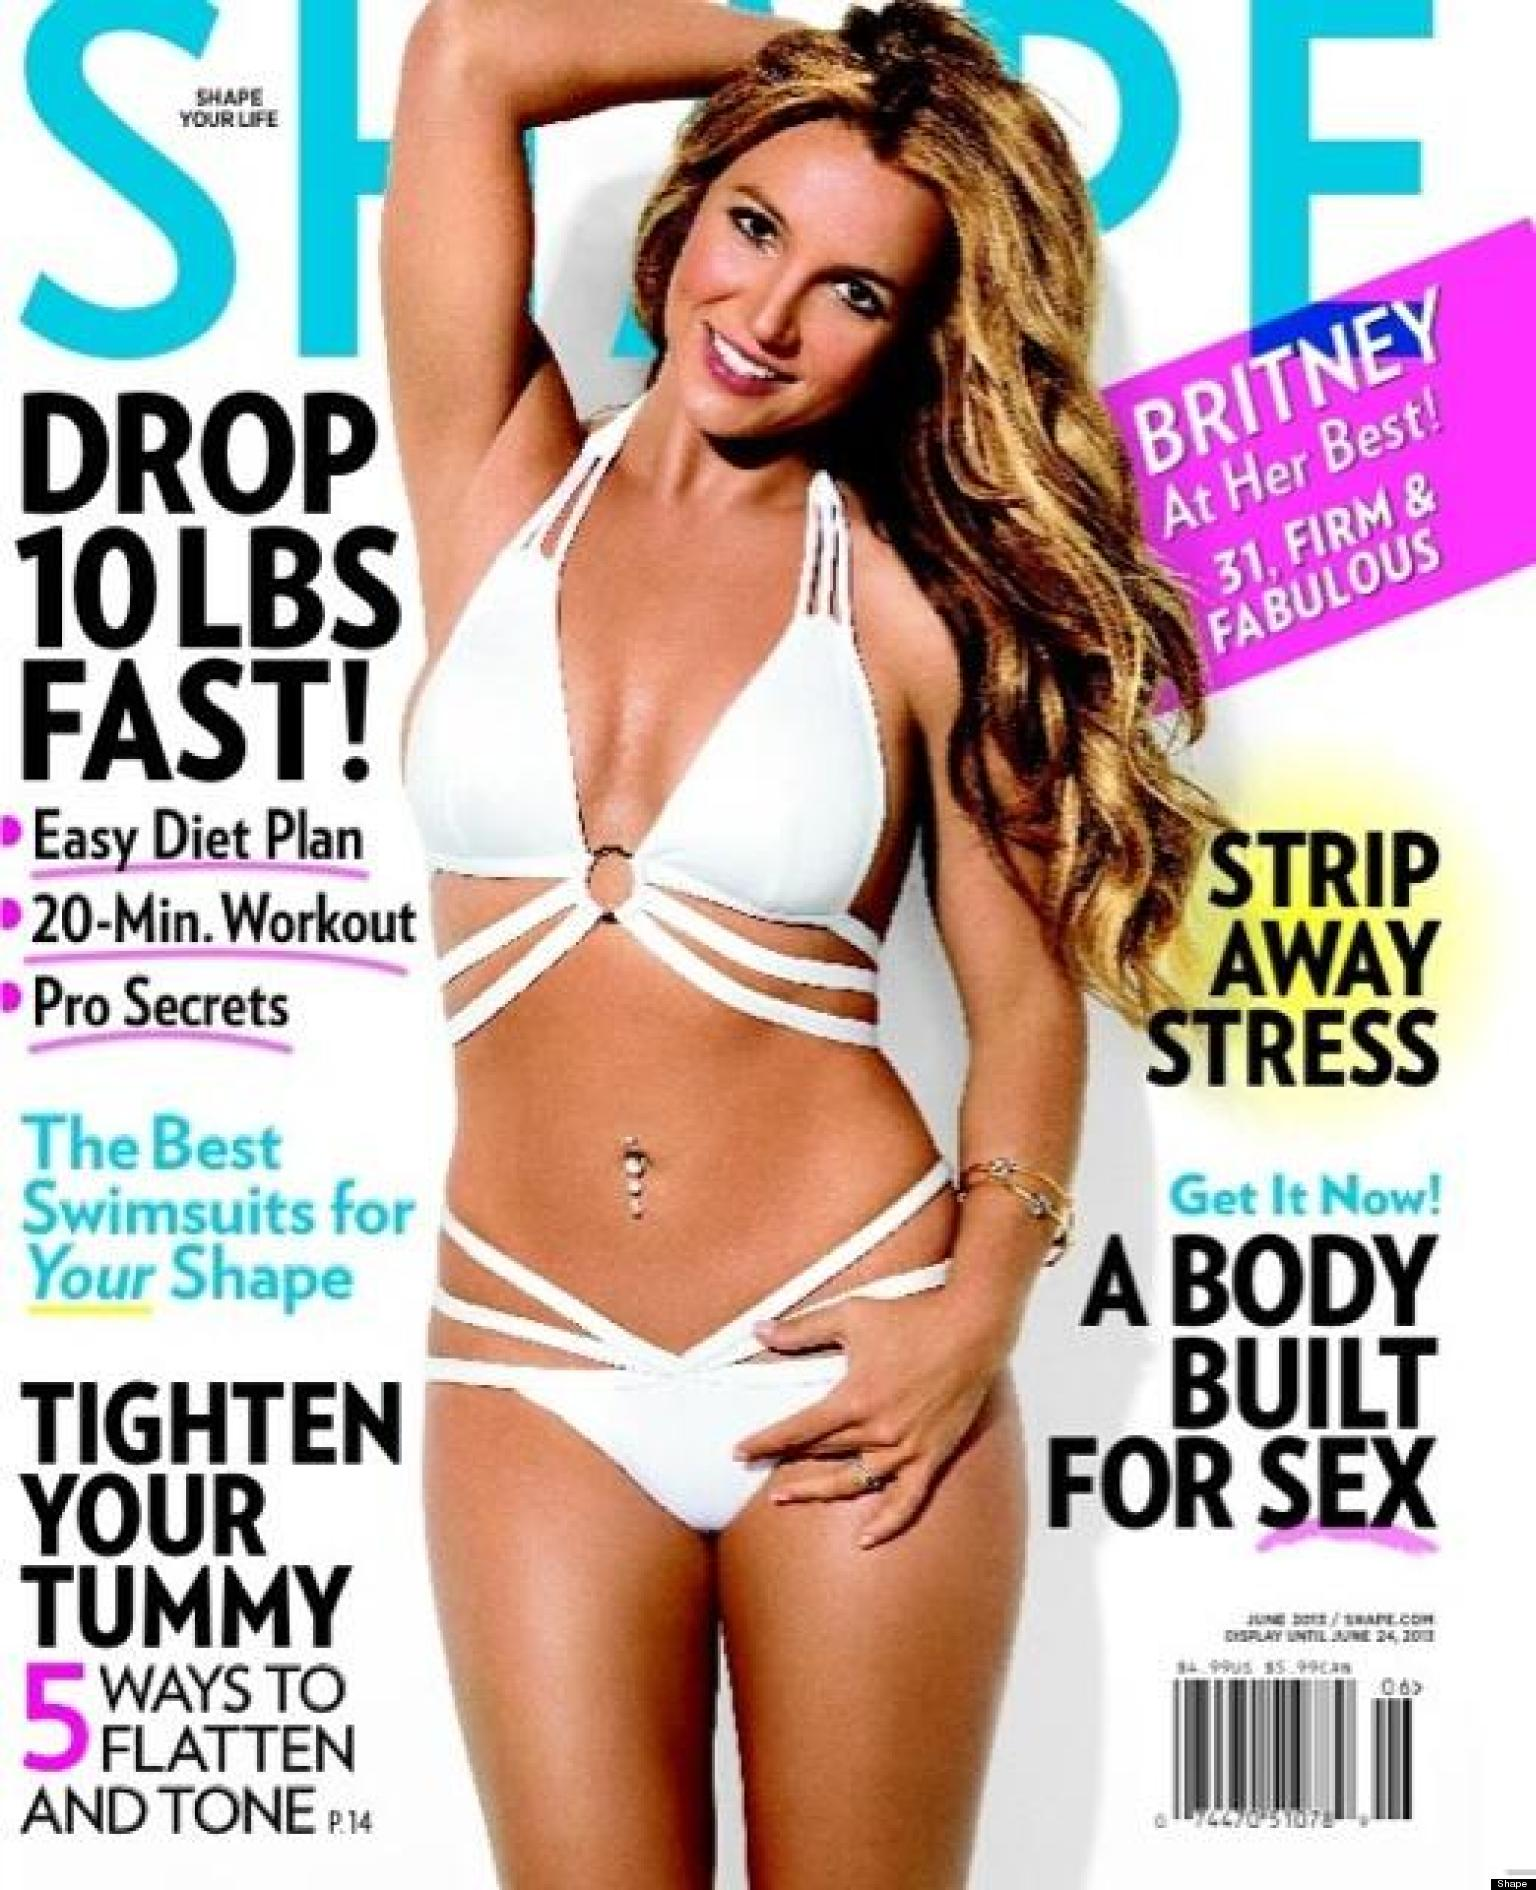 Britney Spears Dons Bikini, Laments The Difficulty Of Dieting